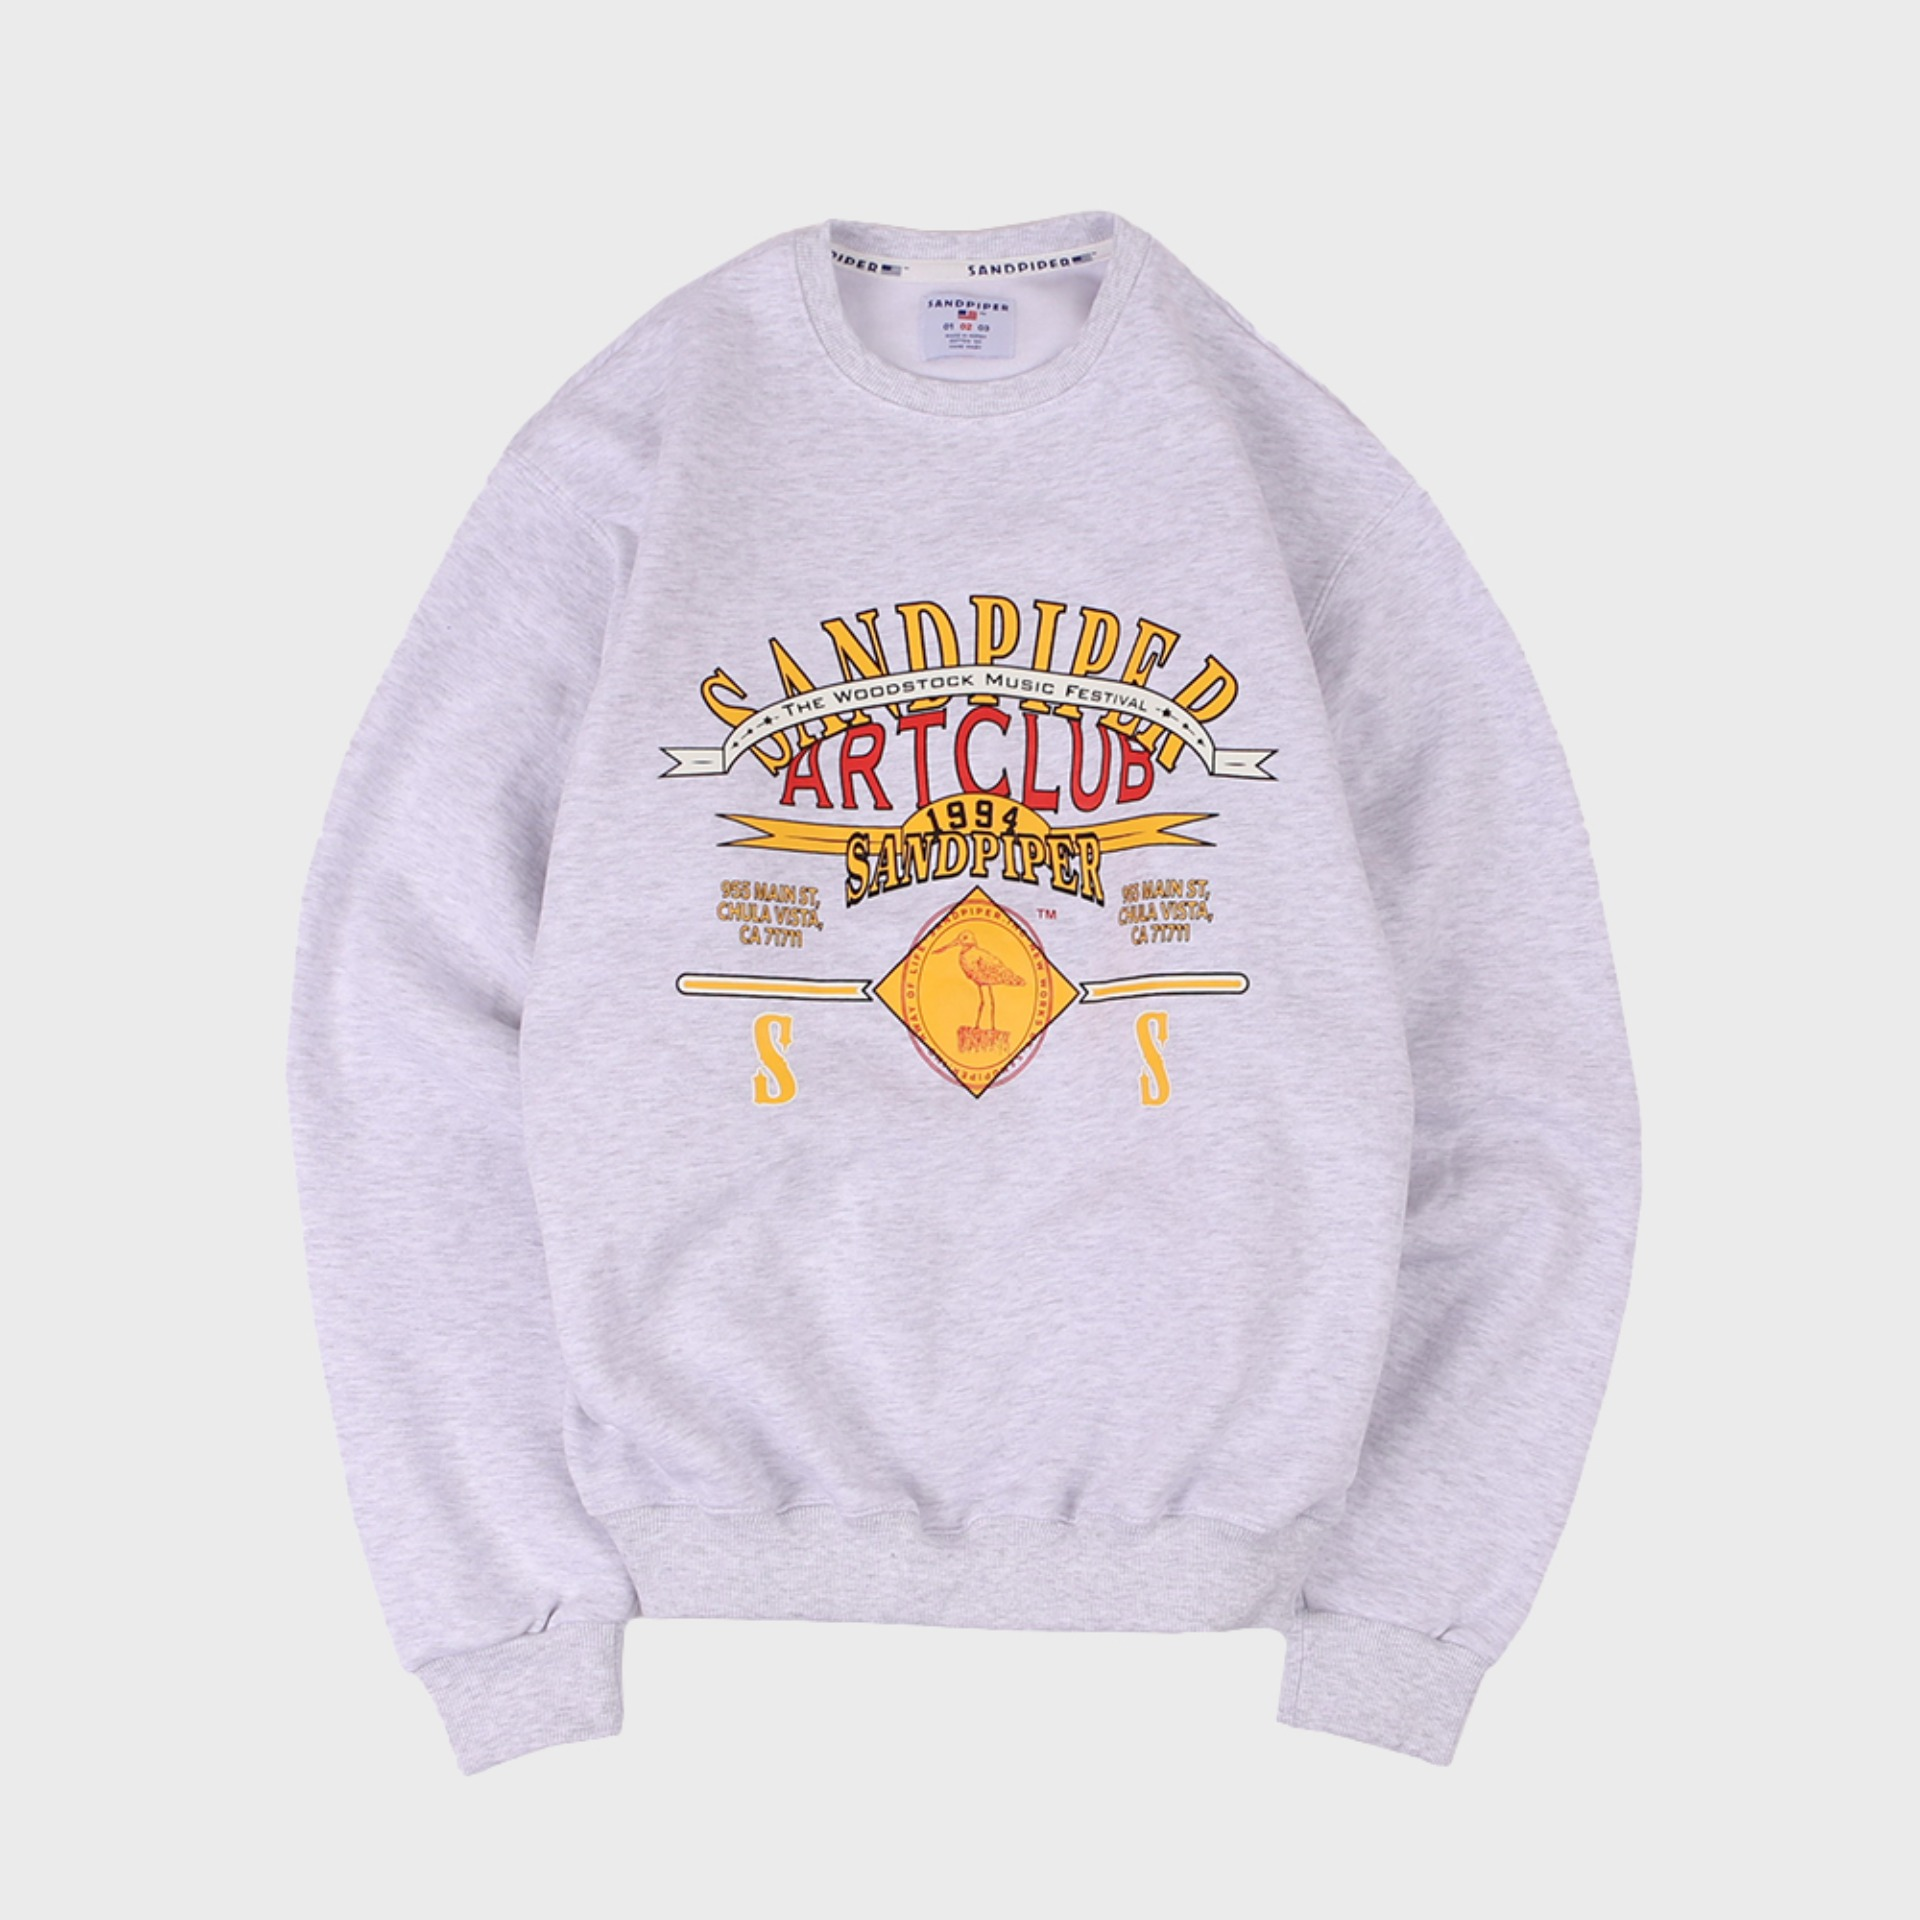 ART CLUB SWEAT SHIRTS (White Melange)